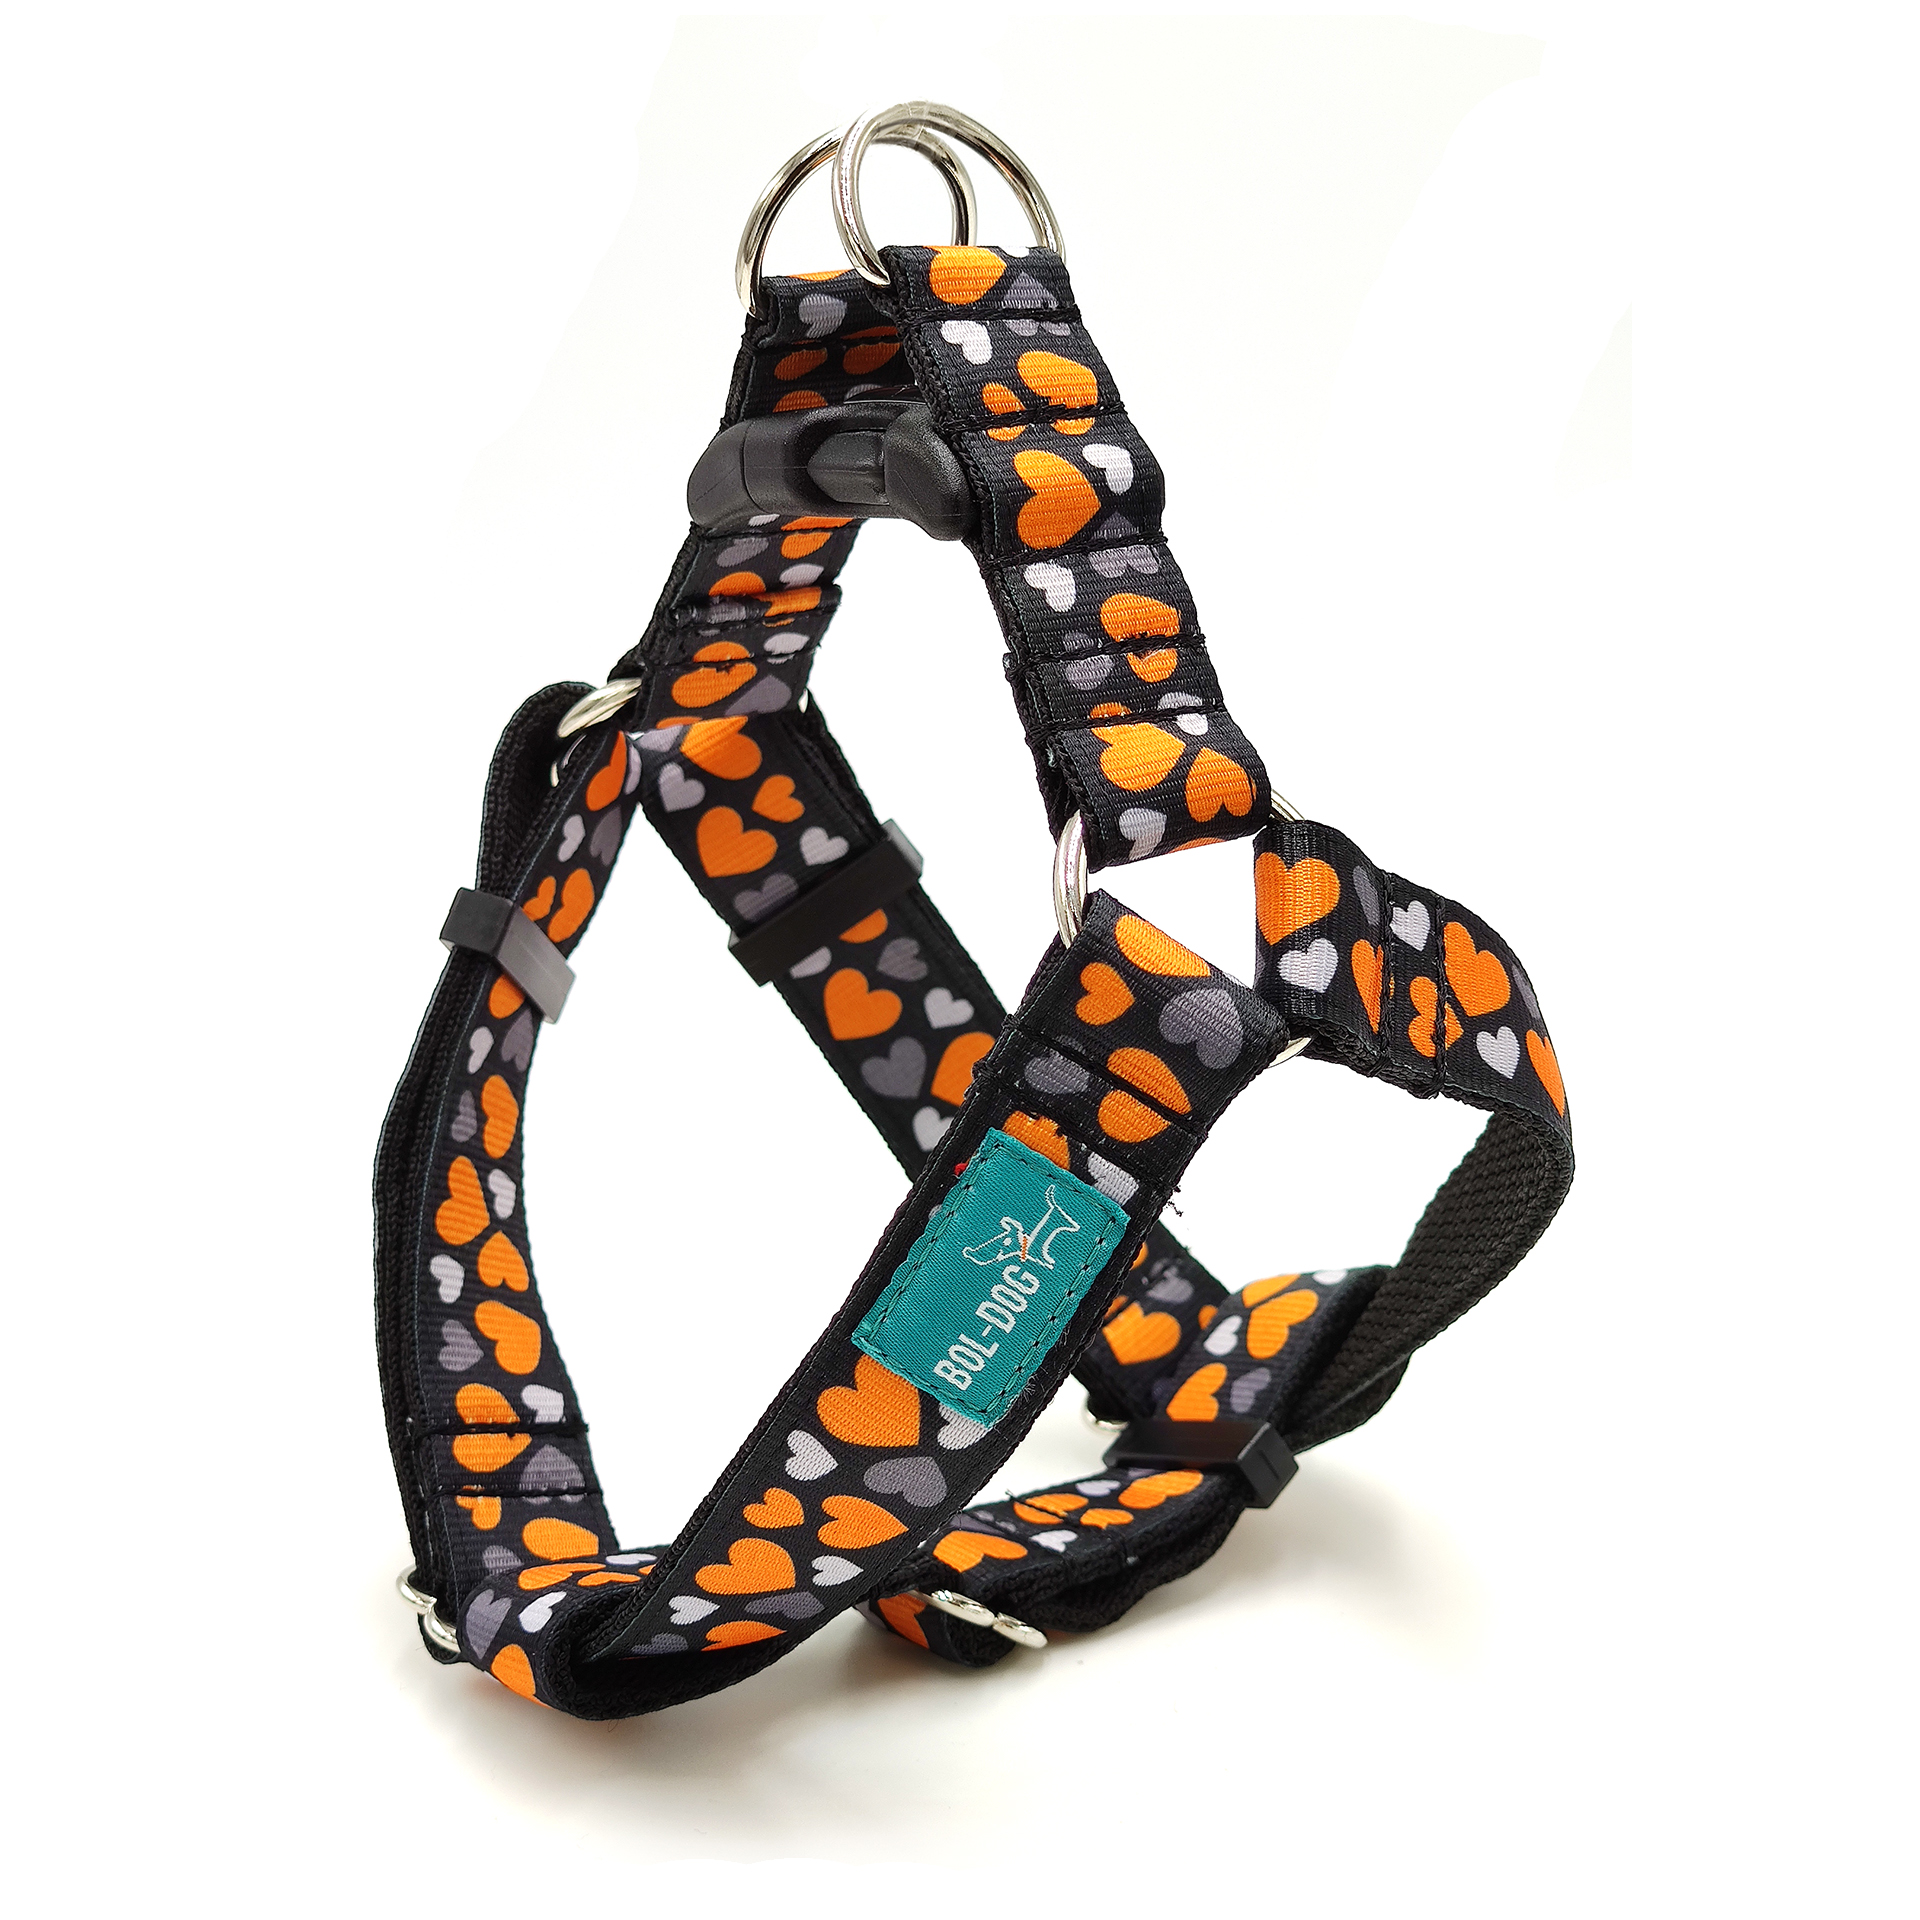 Darling dog harness